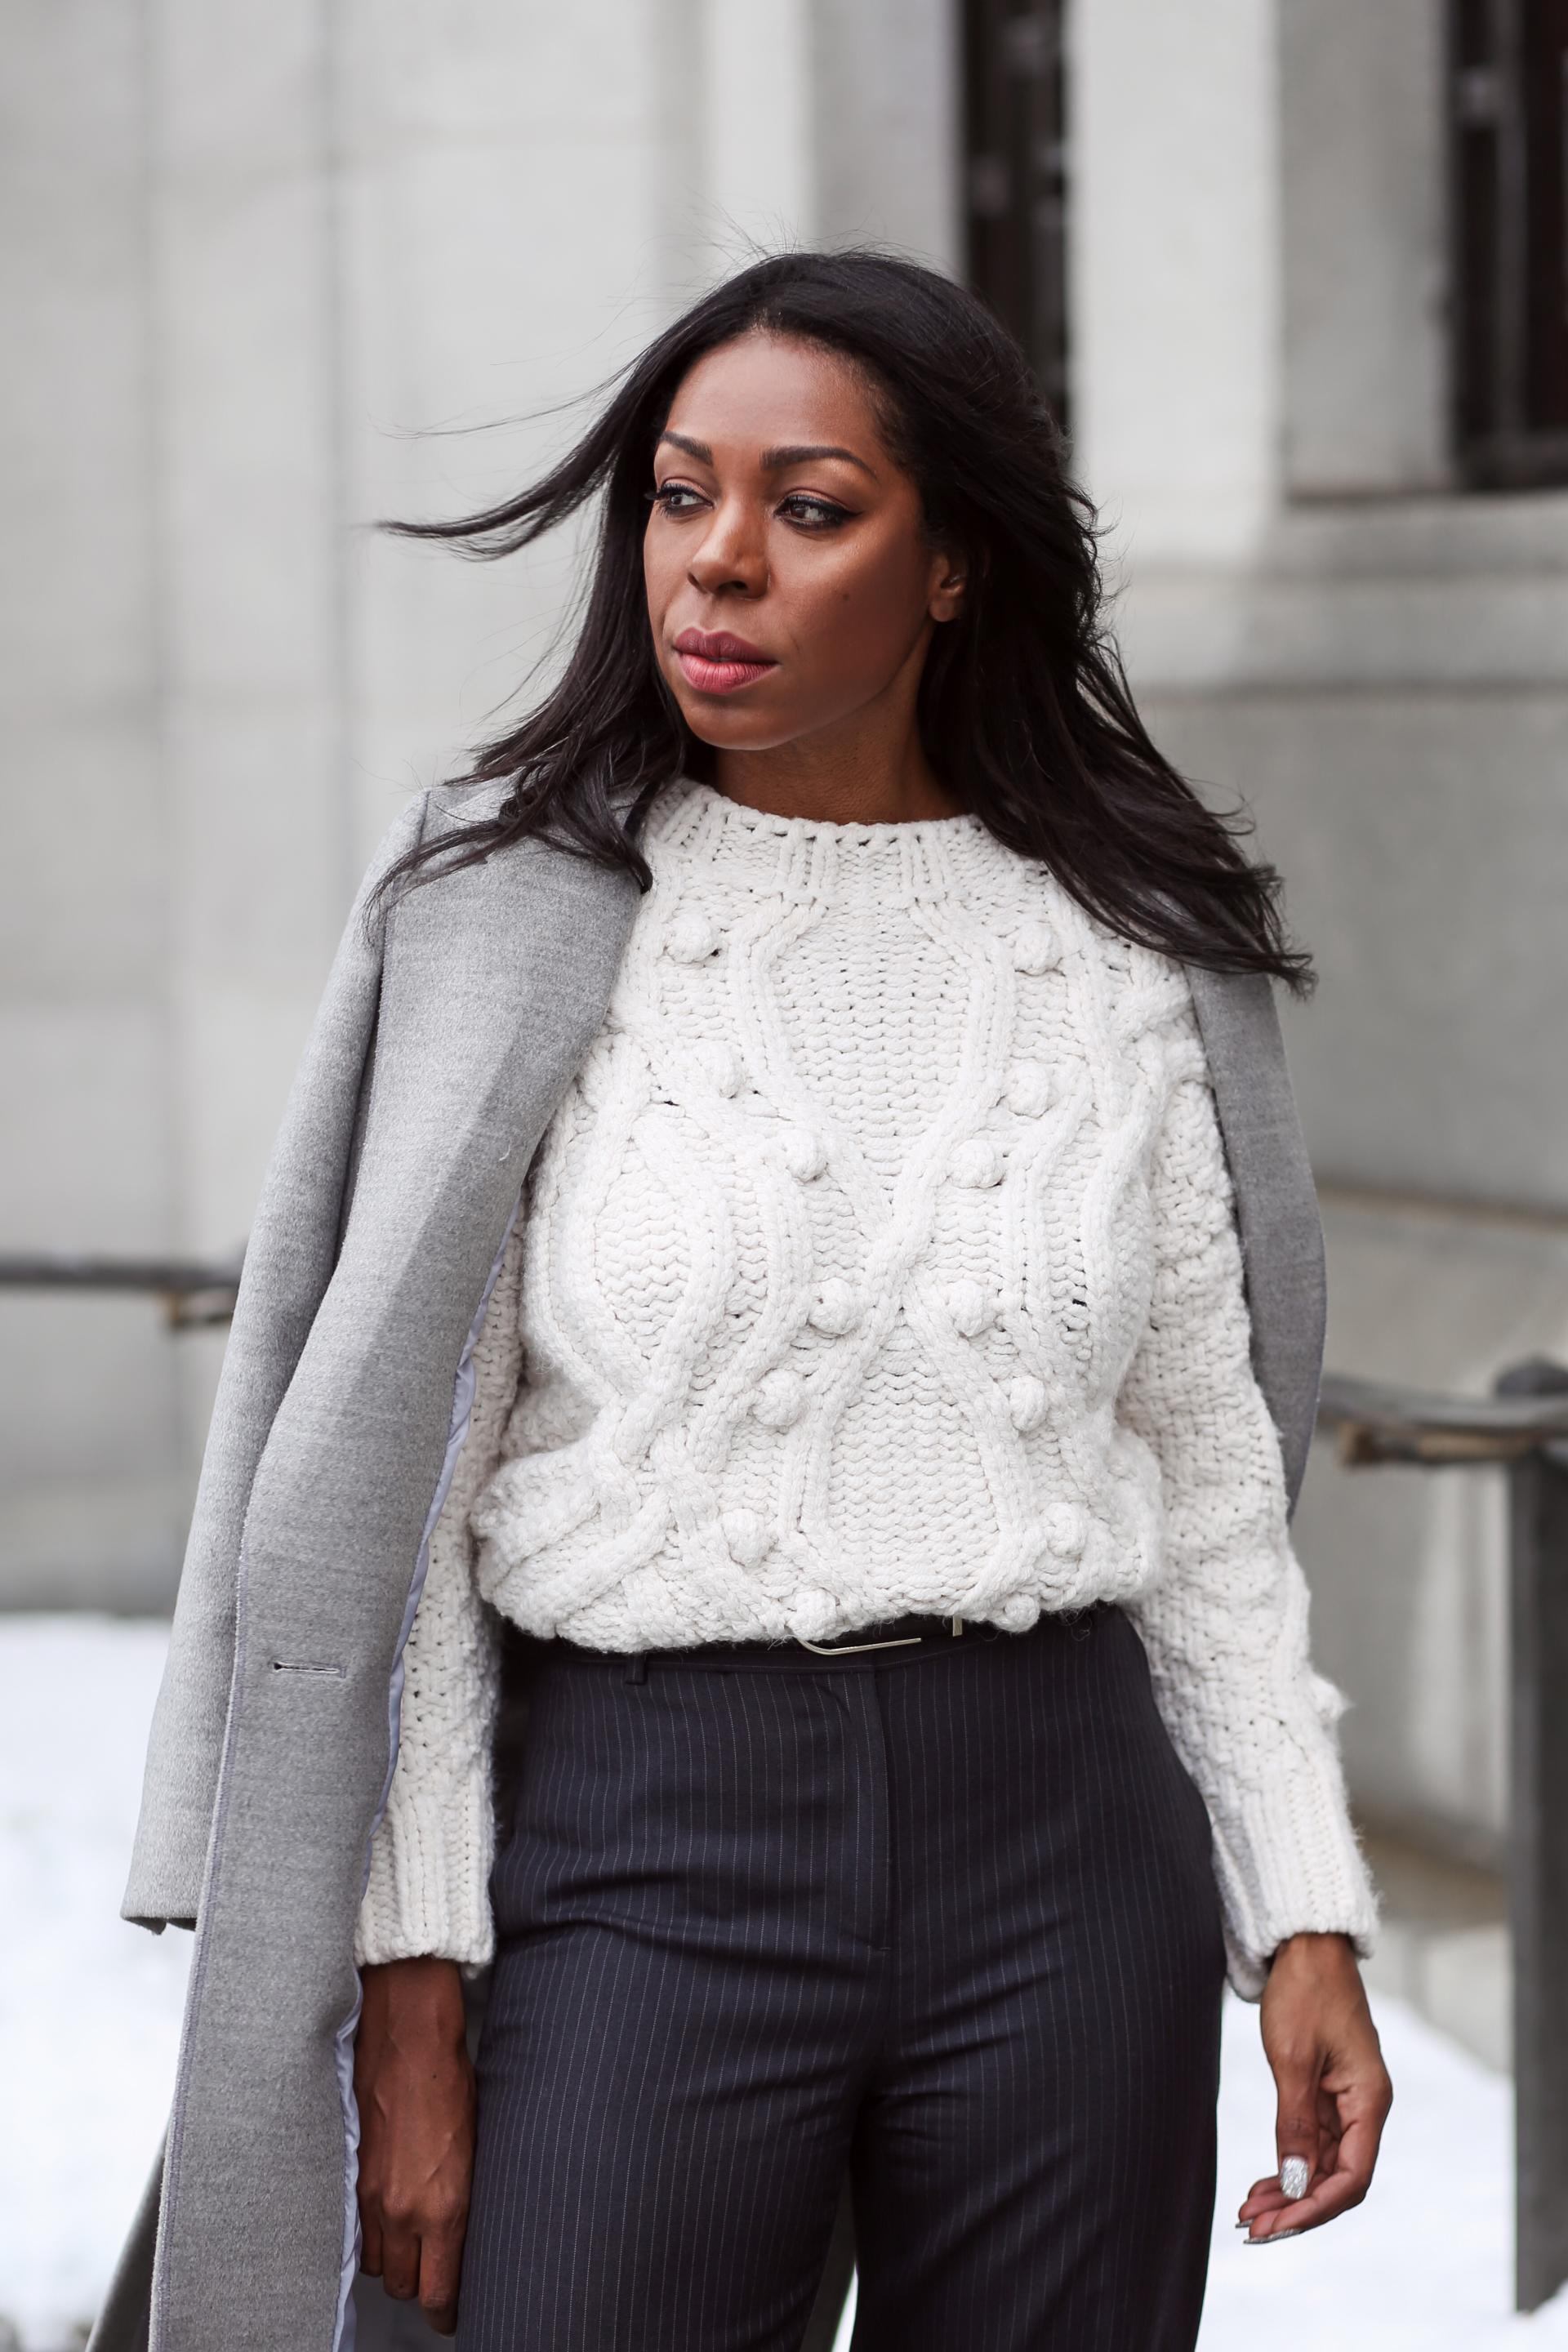 How To Style The Chunky Knit Sweater: Your Winter Style